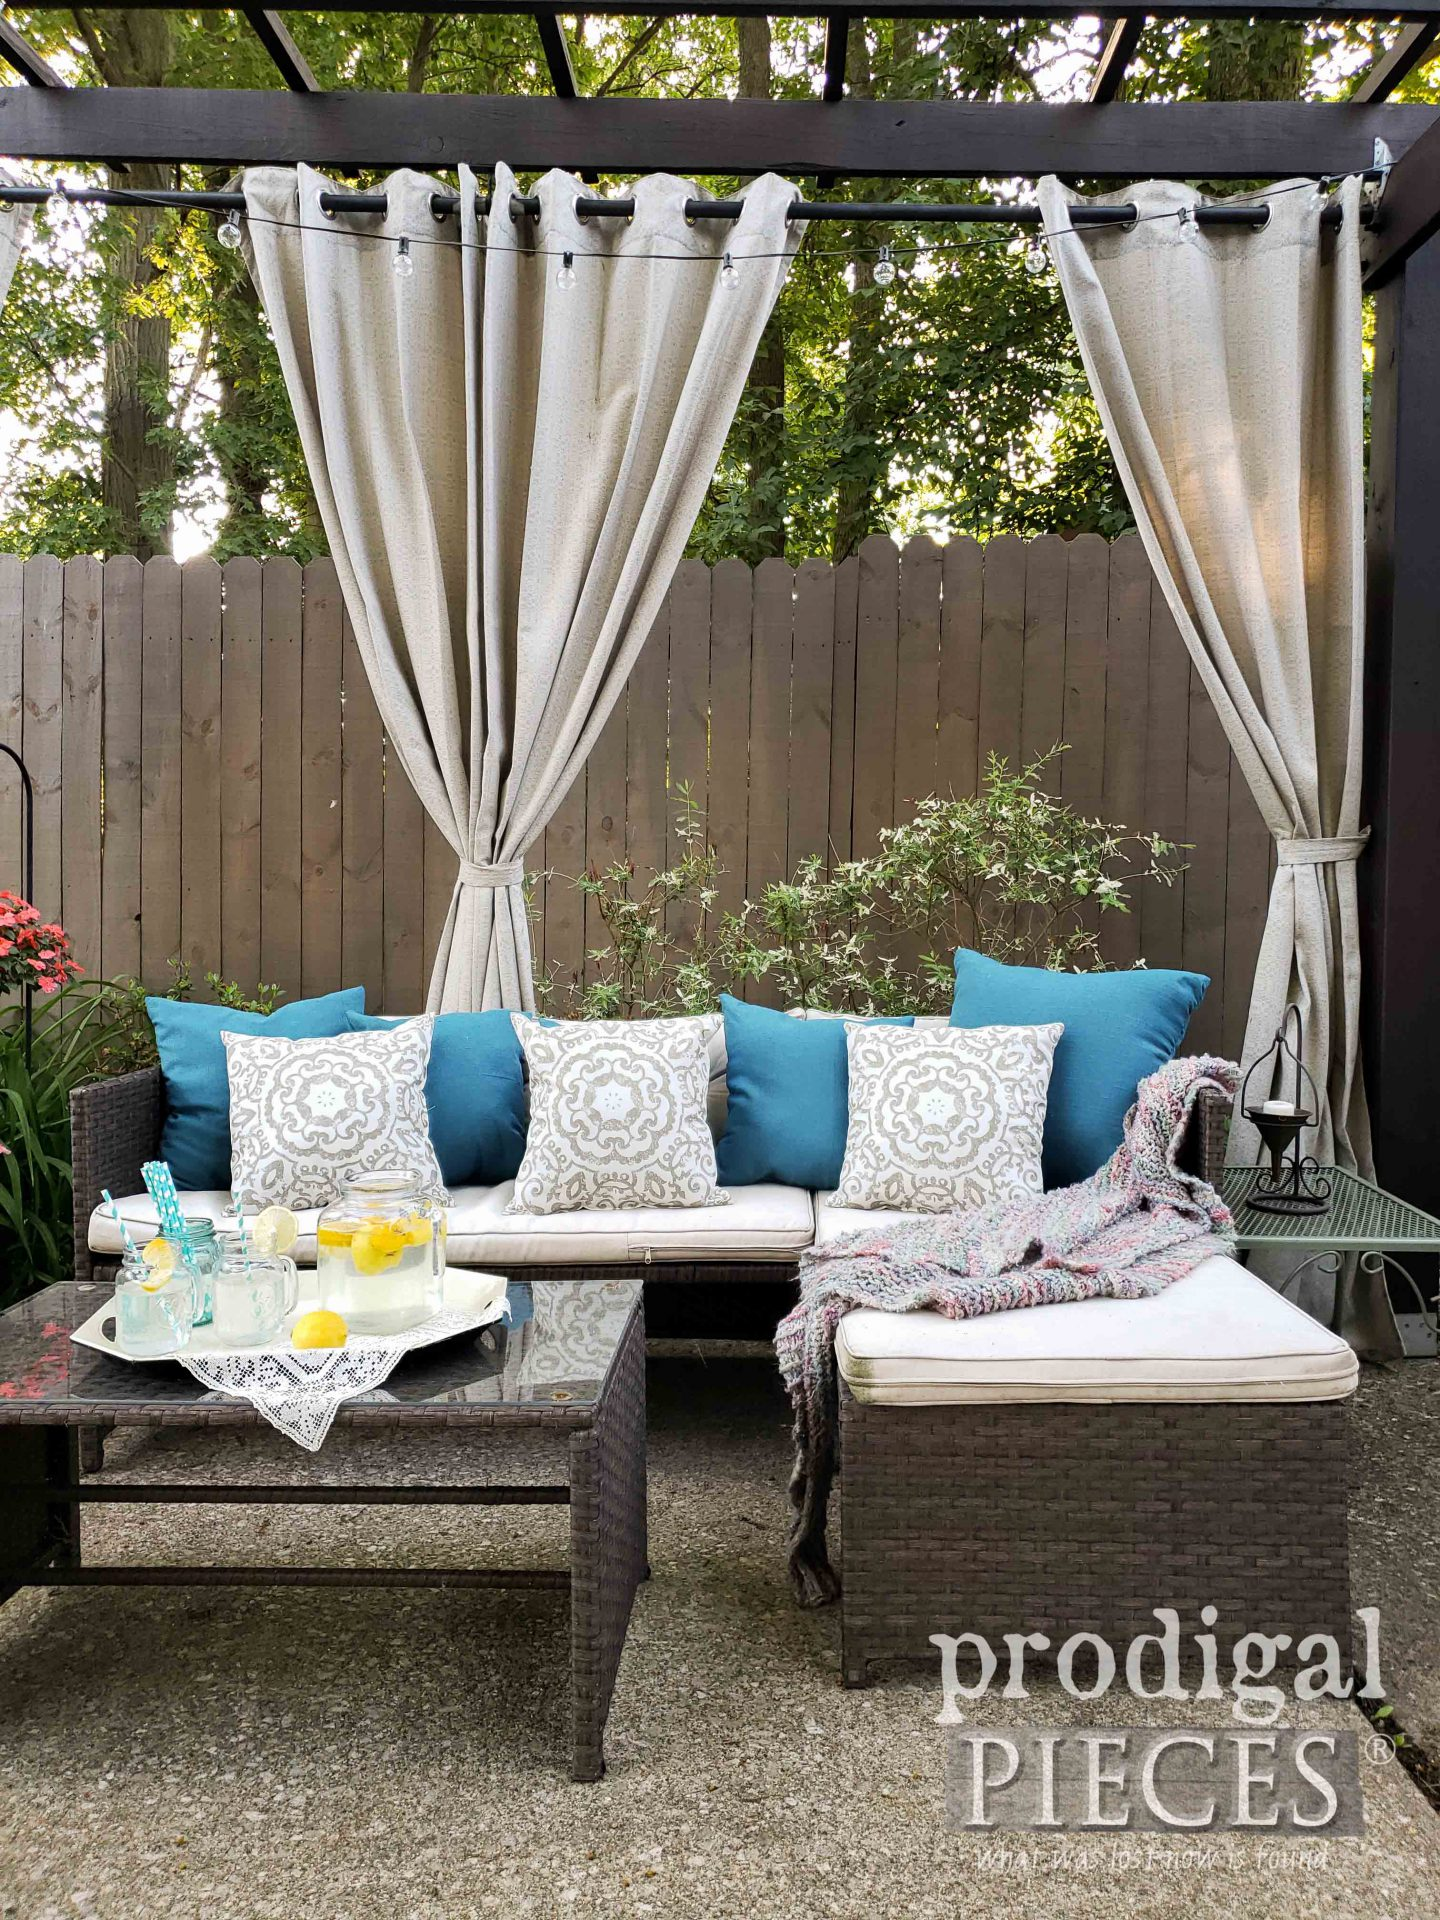 DIY Patio Furniture & Decor by Prodigal Pieces | prodigalpieces.com #prodigalpieces #diy #patio #home #homedecor #farmhouse